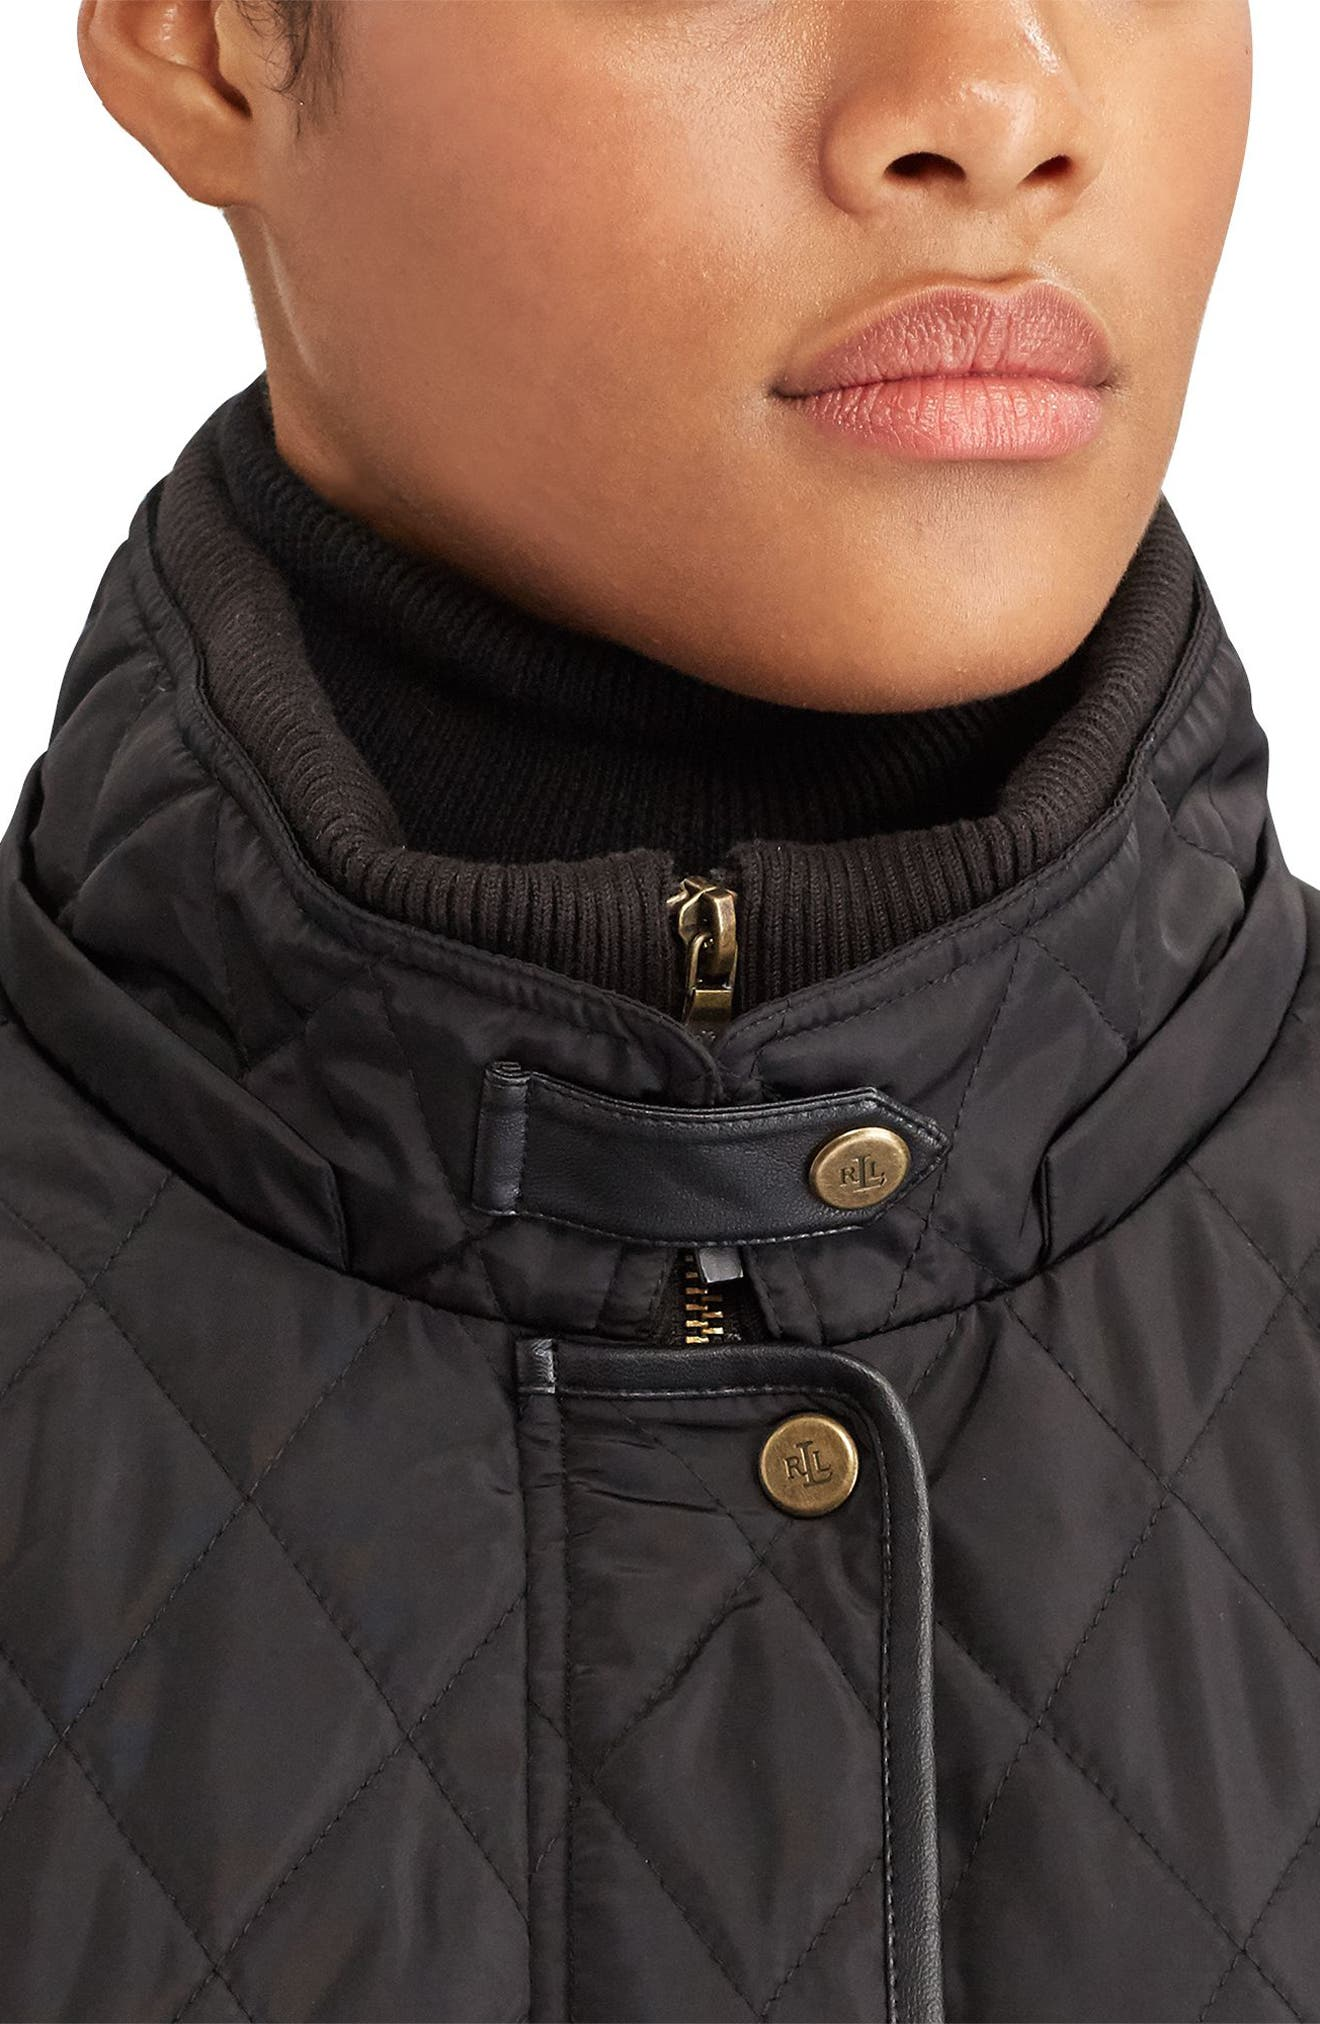 Alternate Image 3  - Lauren Ralph Lauren Diamond Quilted Jacket with Faux Leather Trim